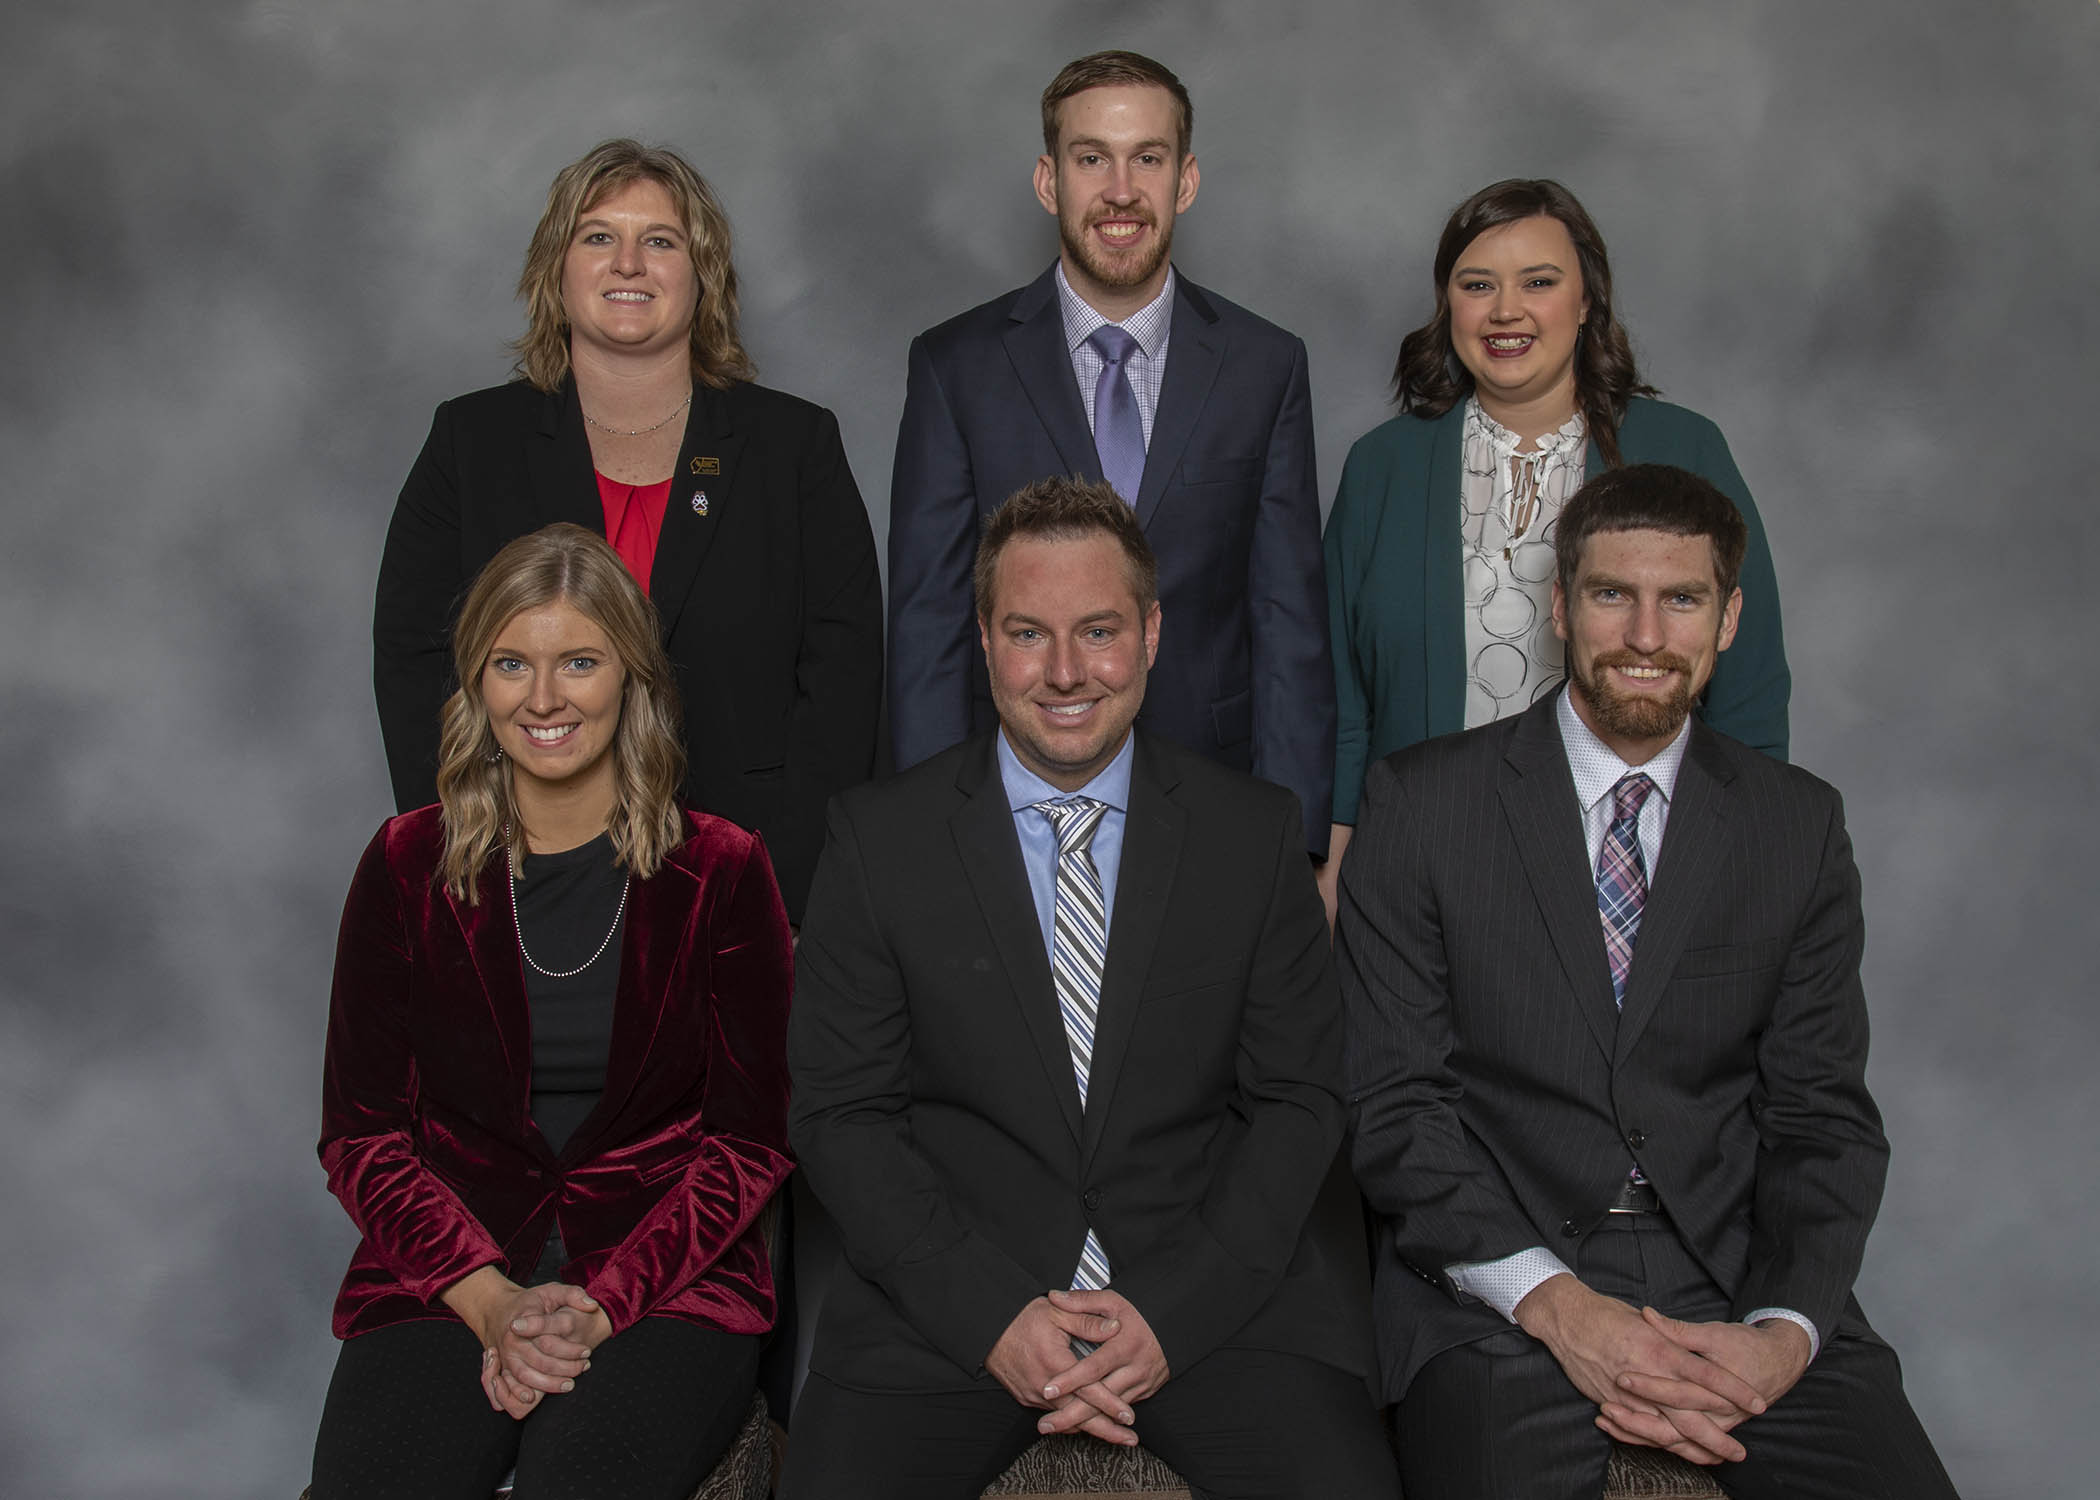 2020 Illinois Farm Bureau Young Leader Executive Committee Members Chosen